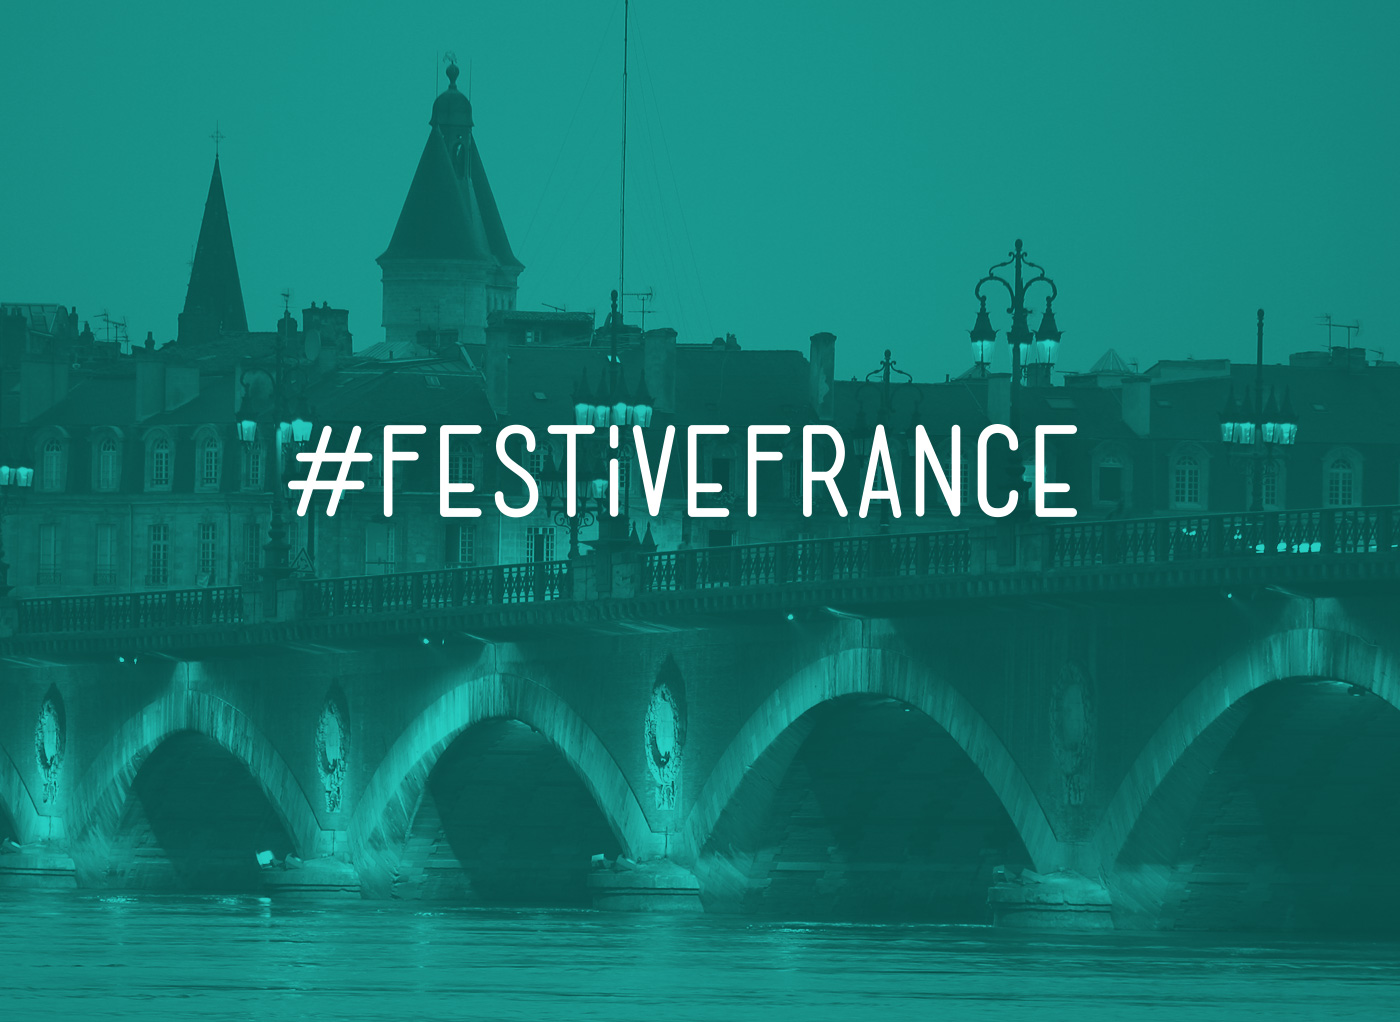 Festive France Hashtag Type design